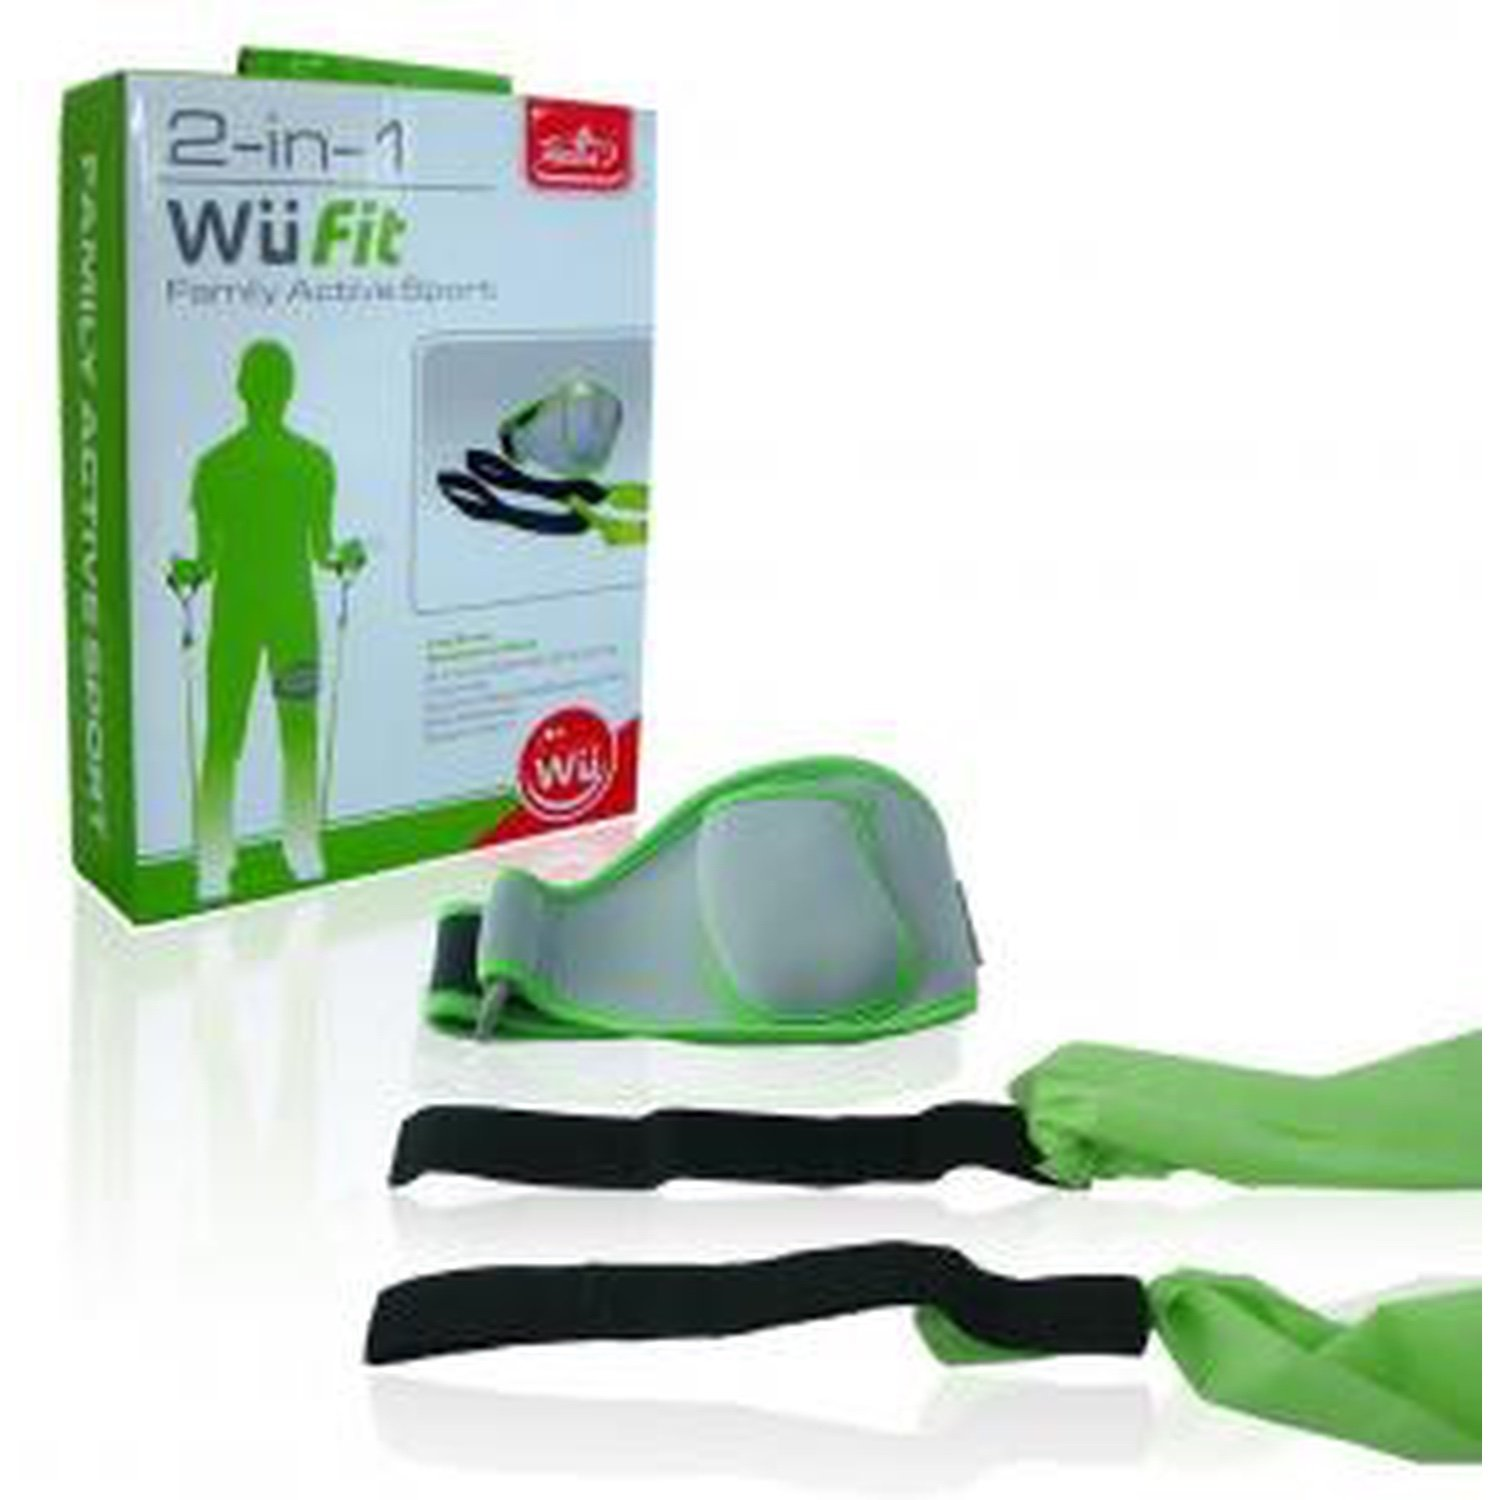 Wii 2in1 EV active sports pack (leg strap + resistance band) ultimate band wii